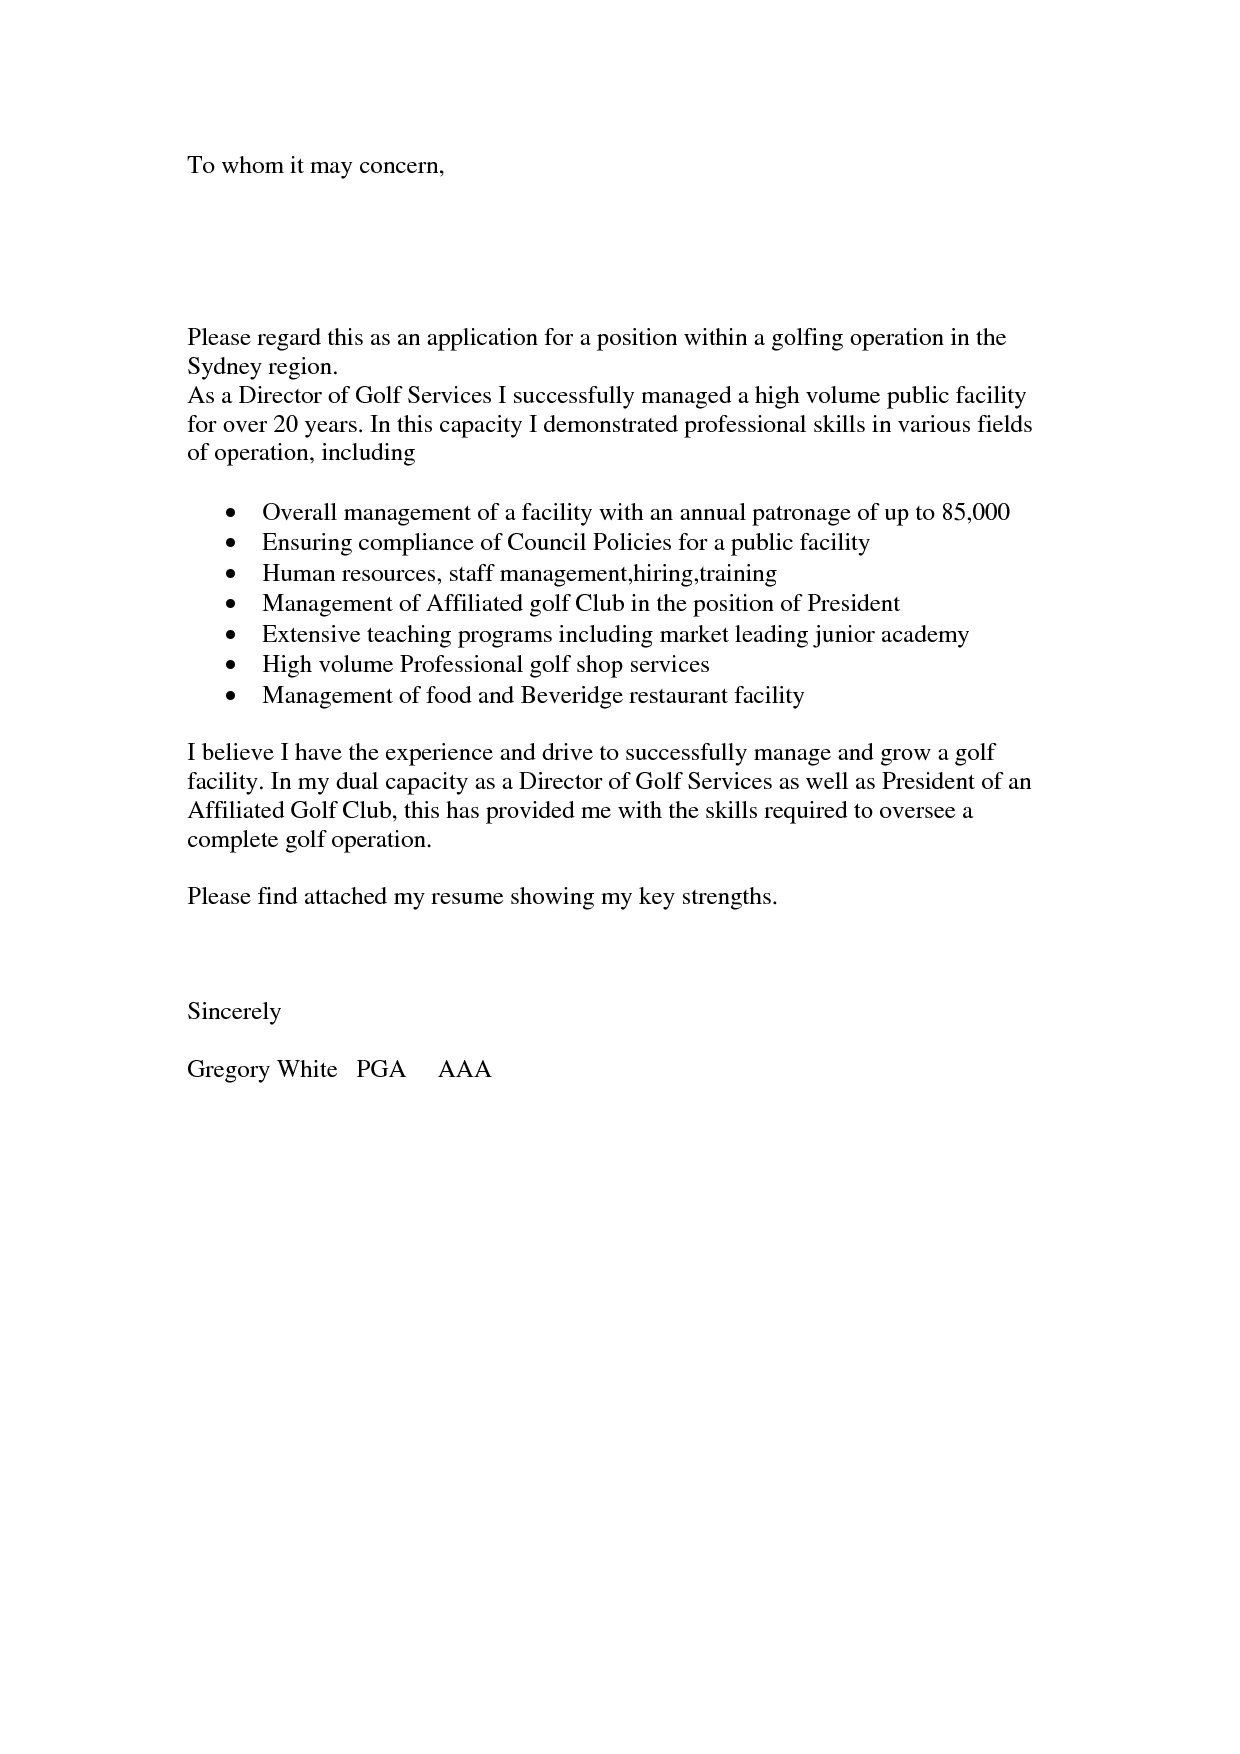 I Have Attached My Resume Fresh Inspirational Please Find The Attached Resume In 2020 My Resume Writing A Cv Resume